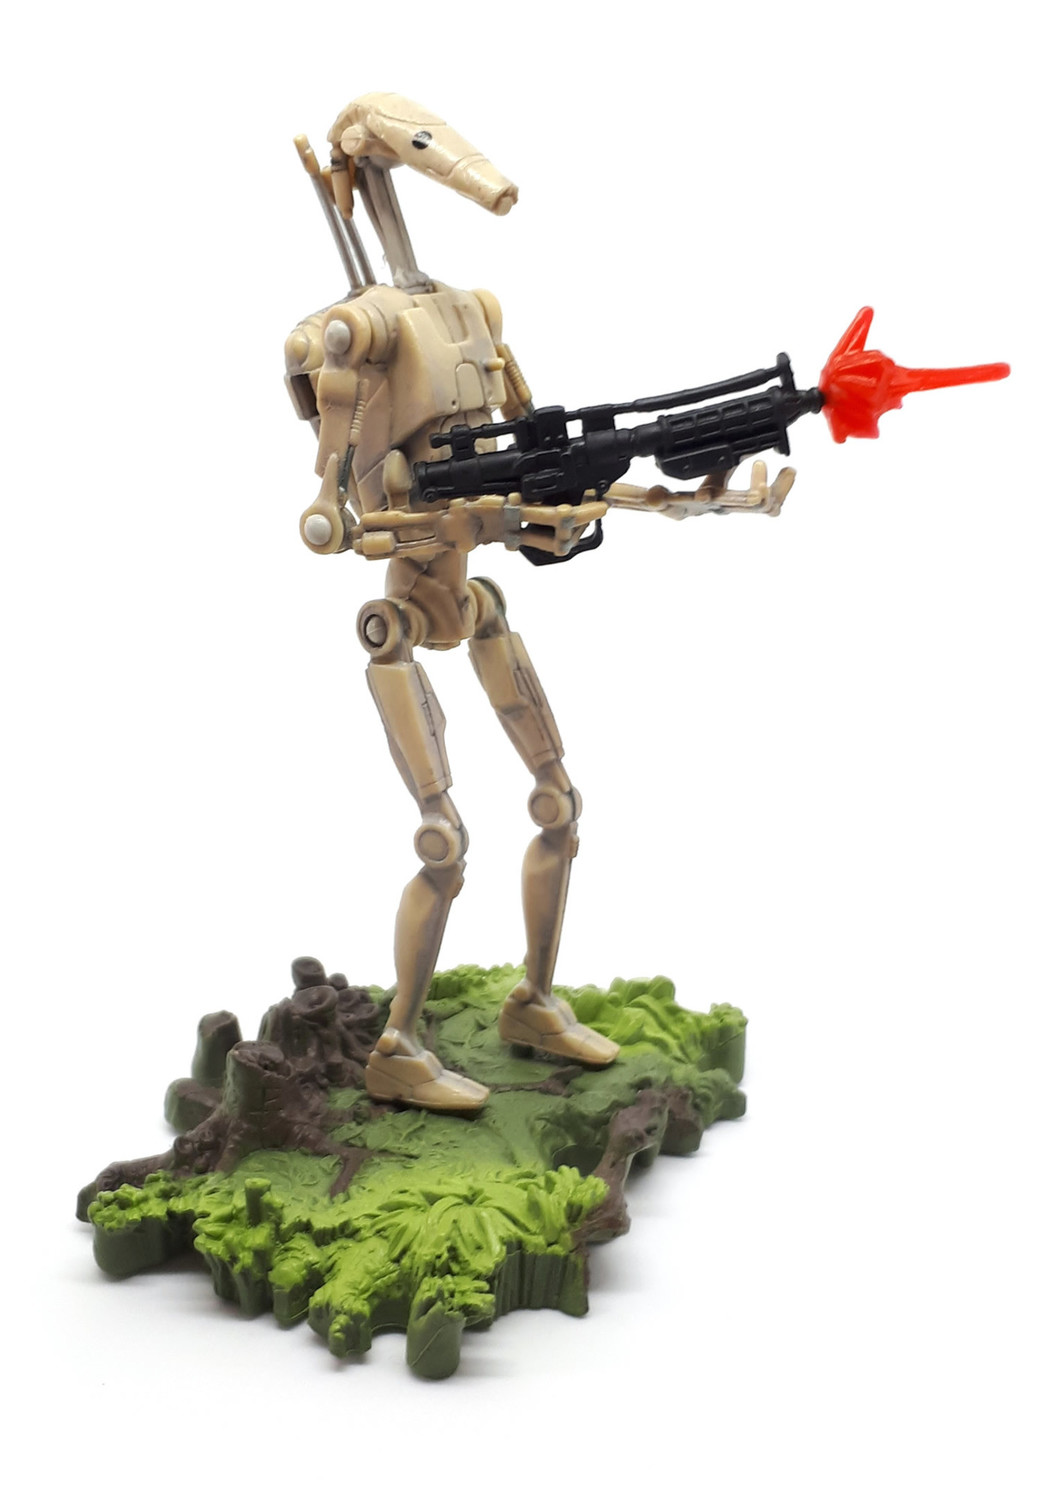 Battle Droid Separatist Army Revenge Of The Sith Action Figure Iii 17